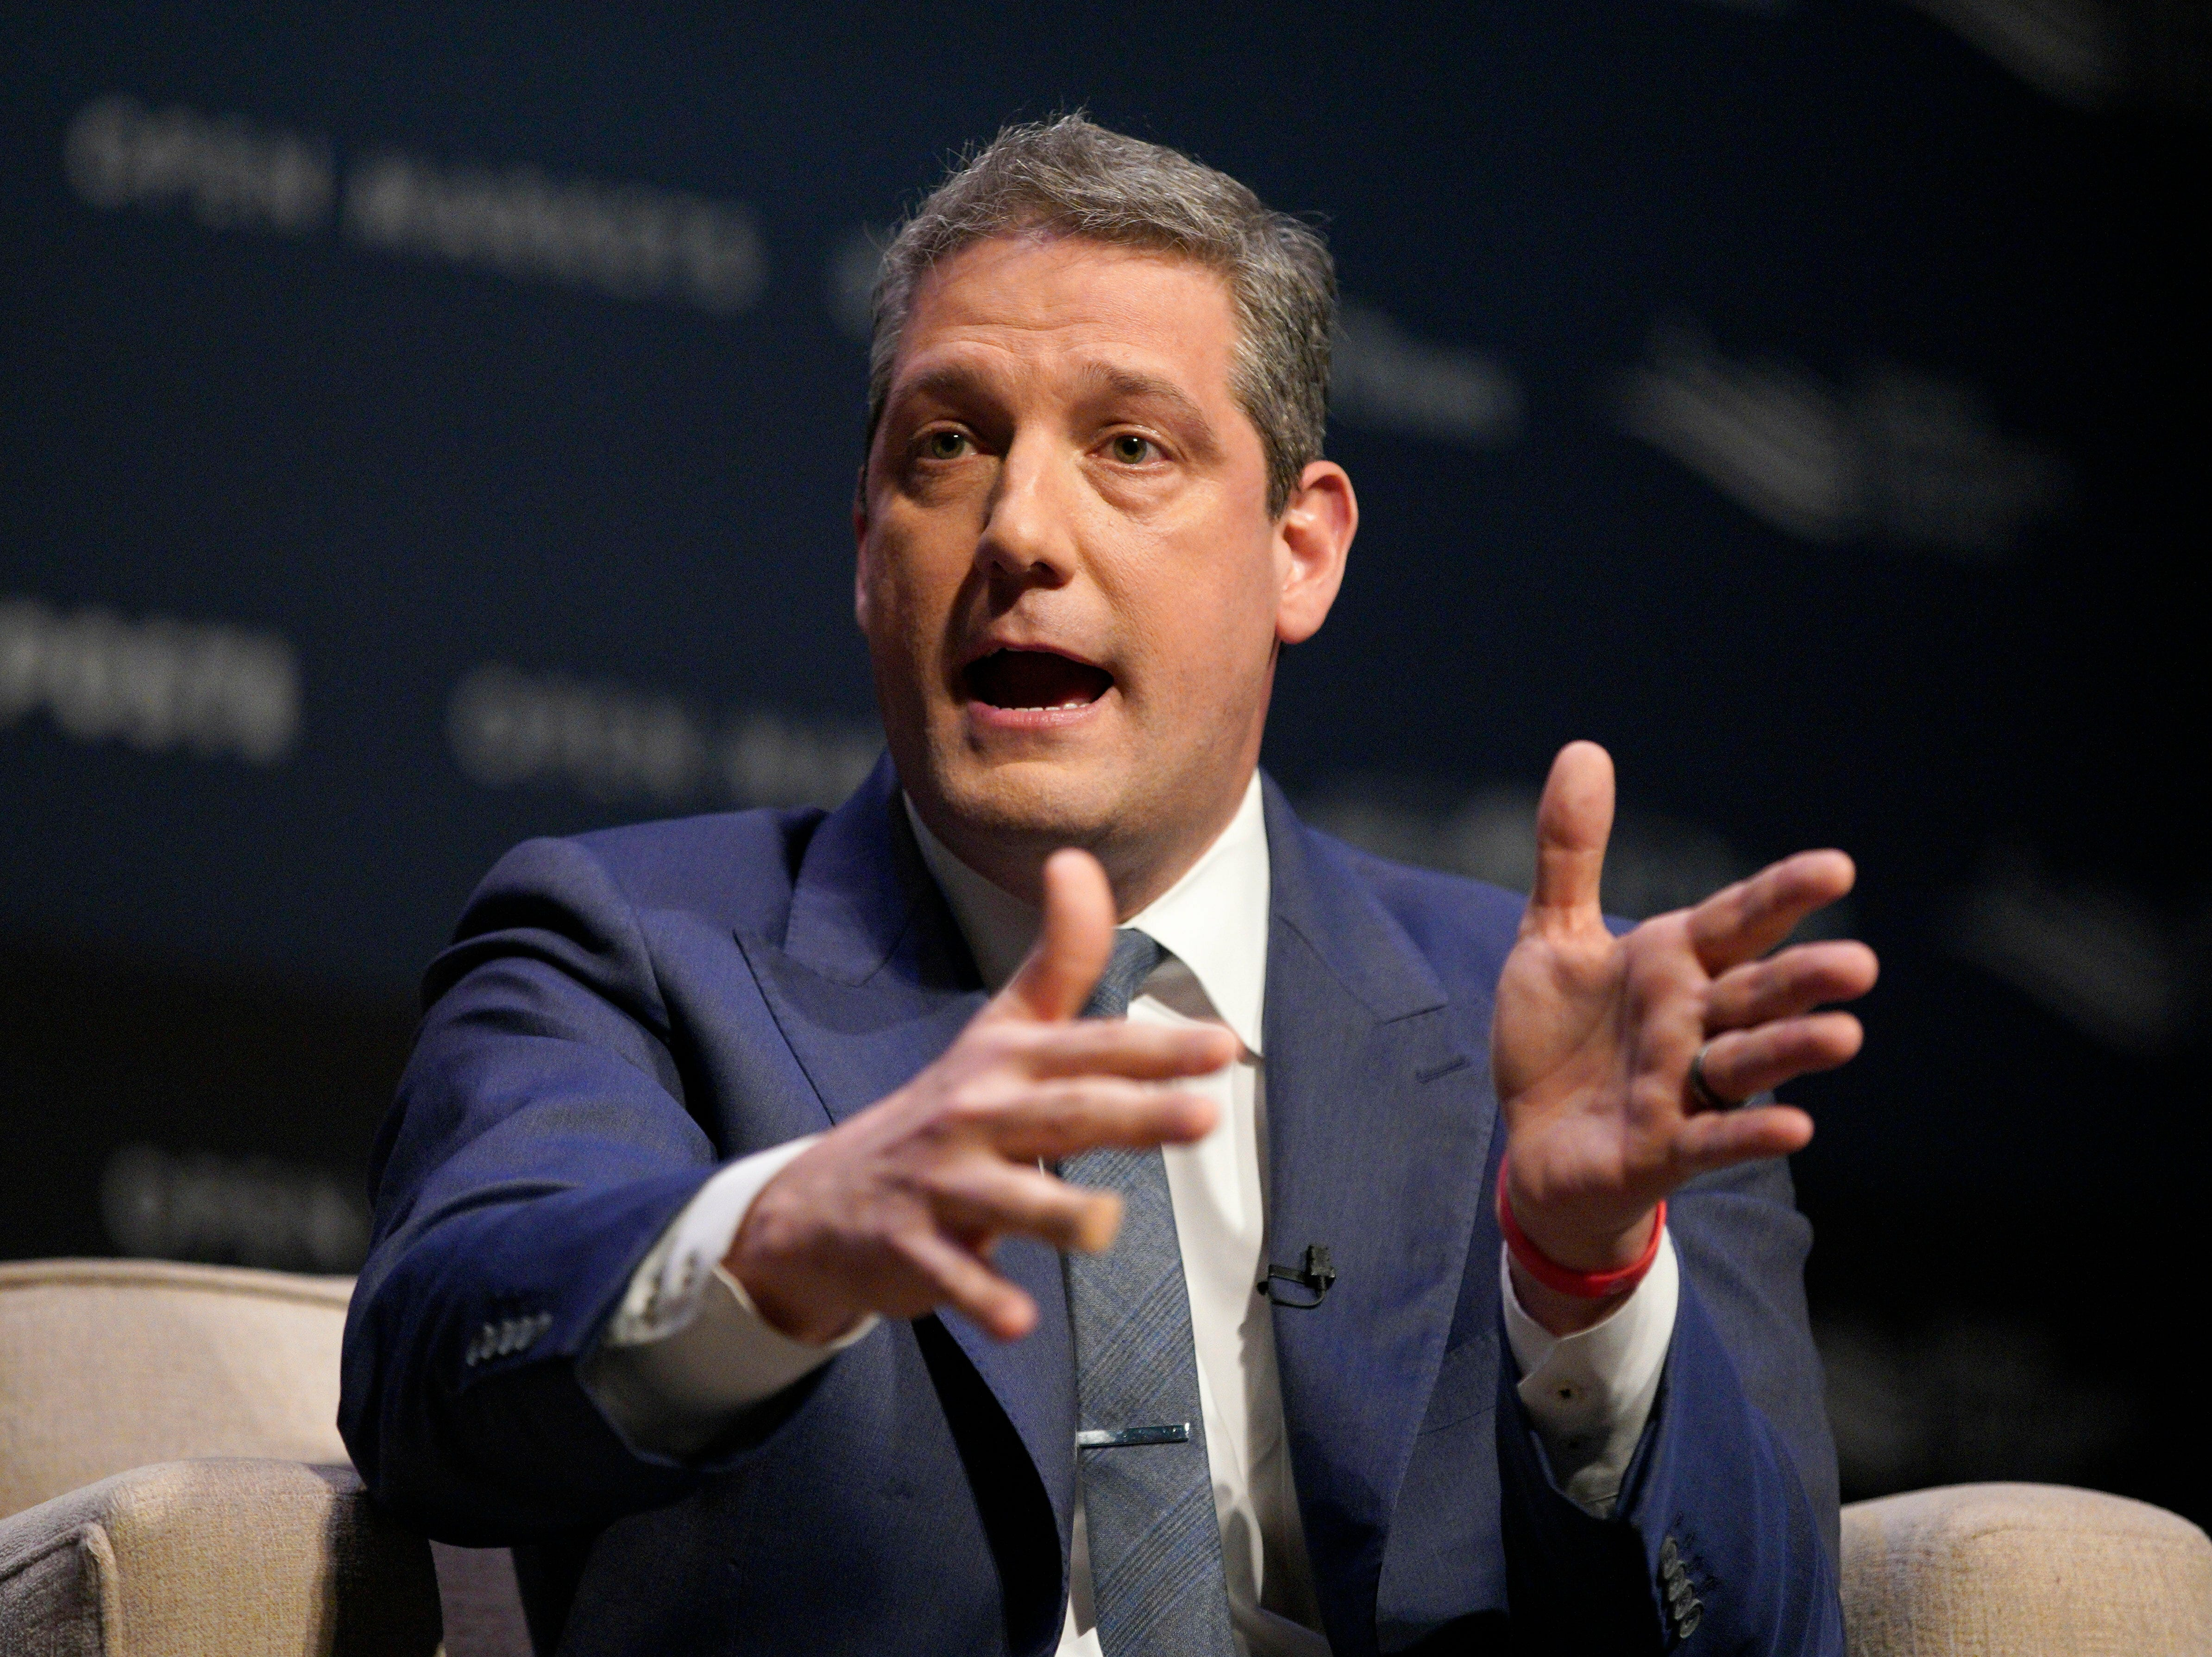 Rep. Tim Ryan, D-Ohio, announced that he is running for president on Thursday, April 4, 2019.